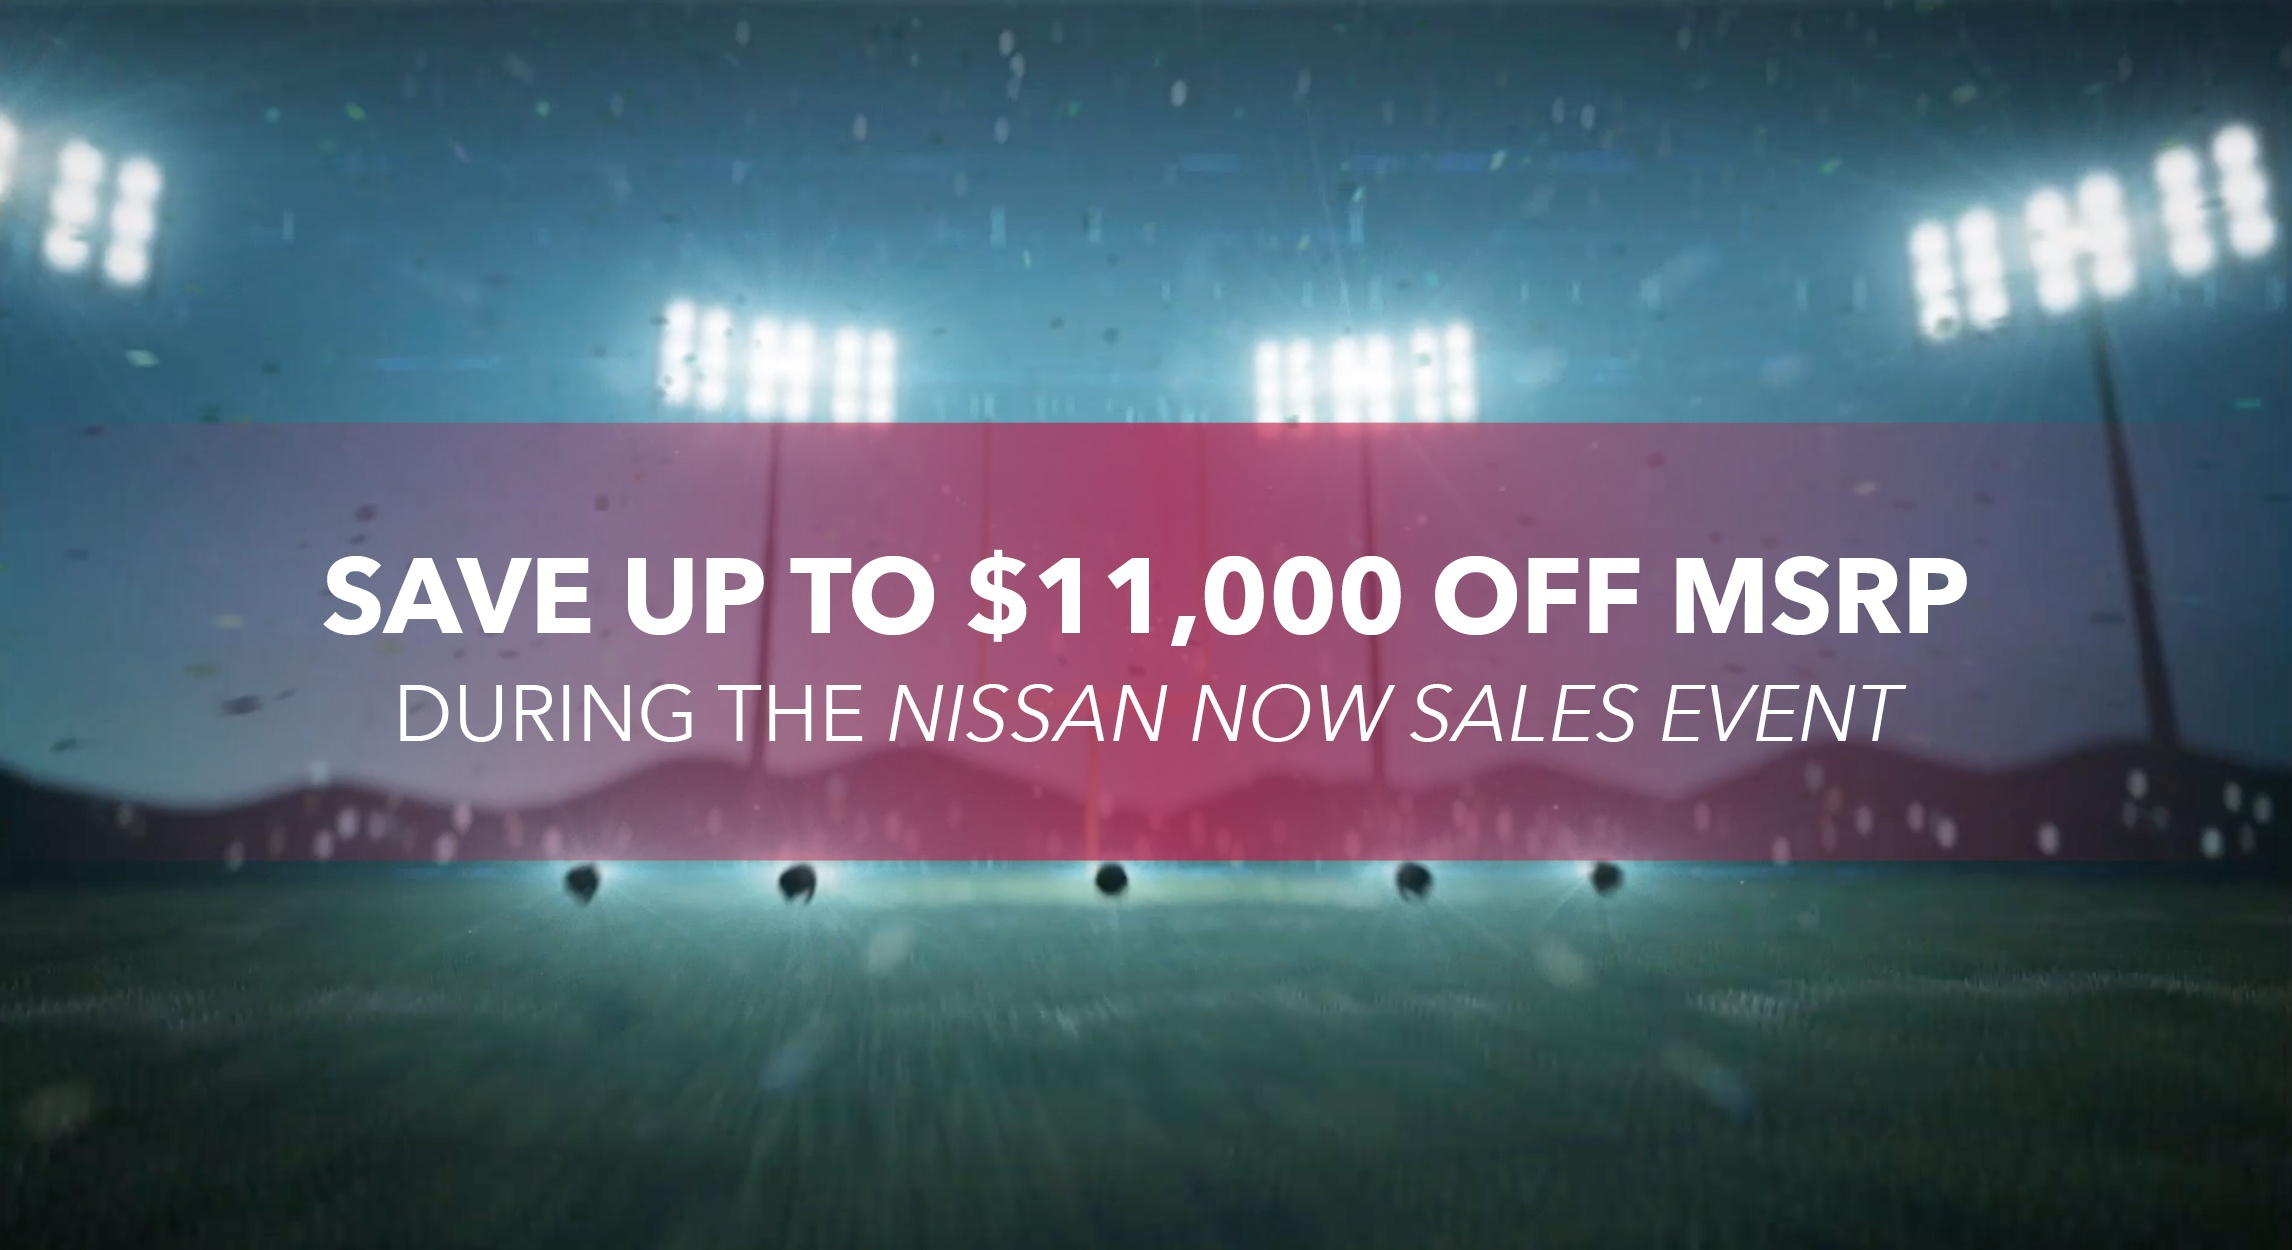 Nissan-Now-Sales-Event.jpg